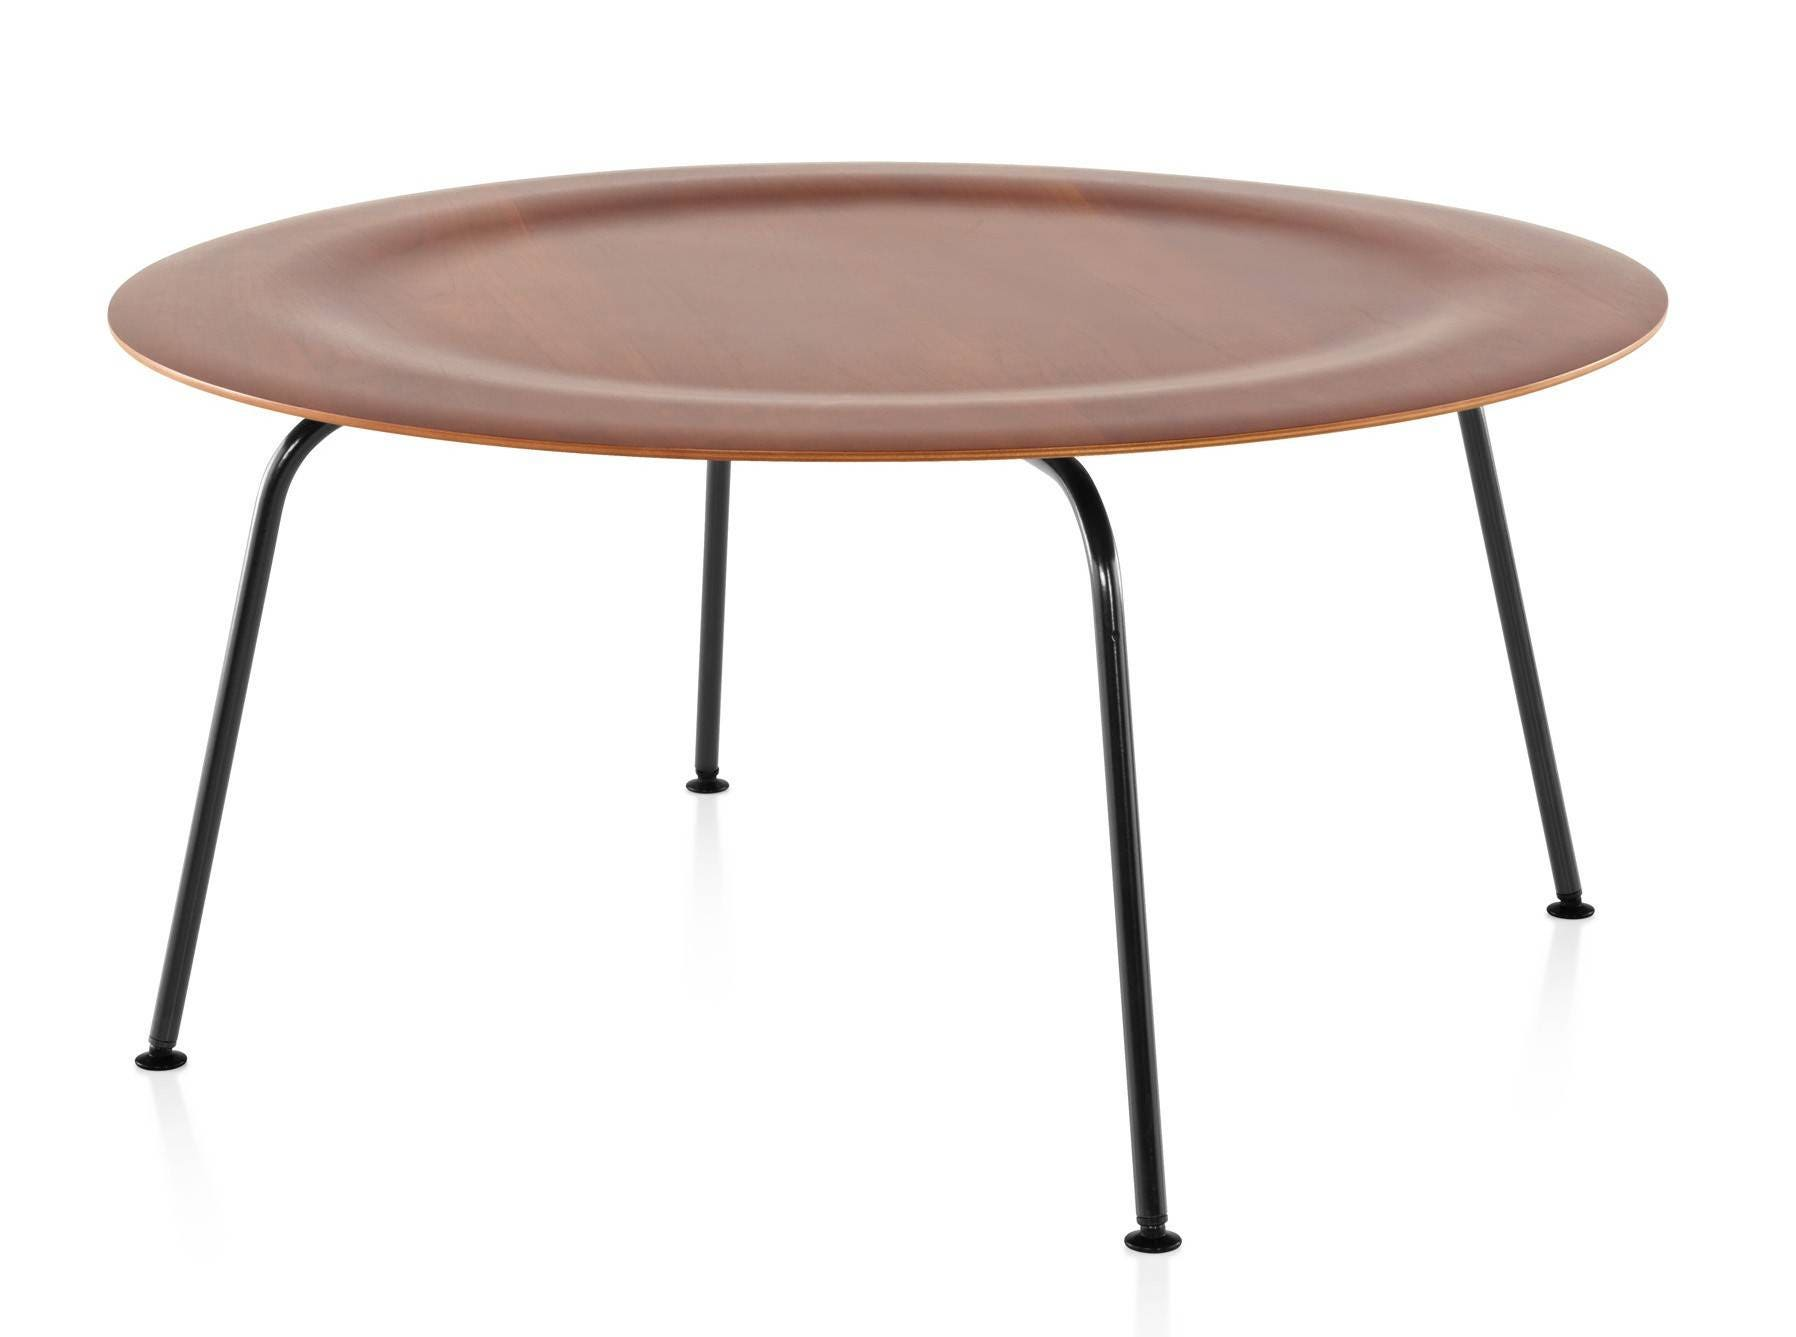 Herman Miller Eames Molded Plywood Coffee Table Metal Base Gr Shop Canada